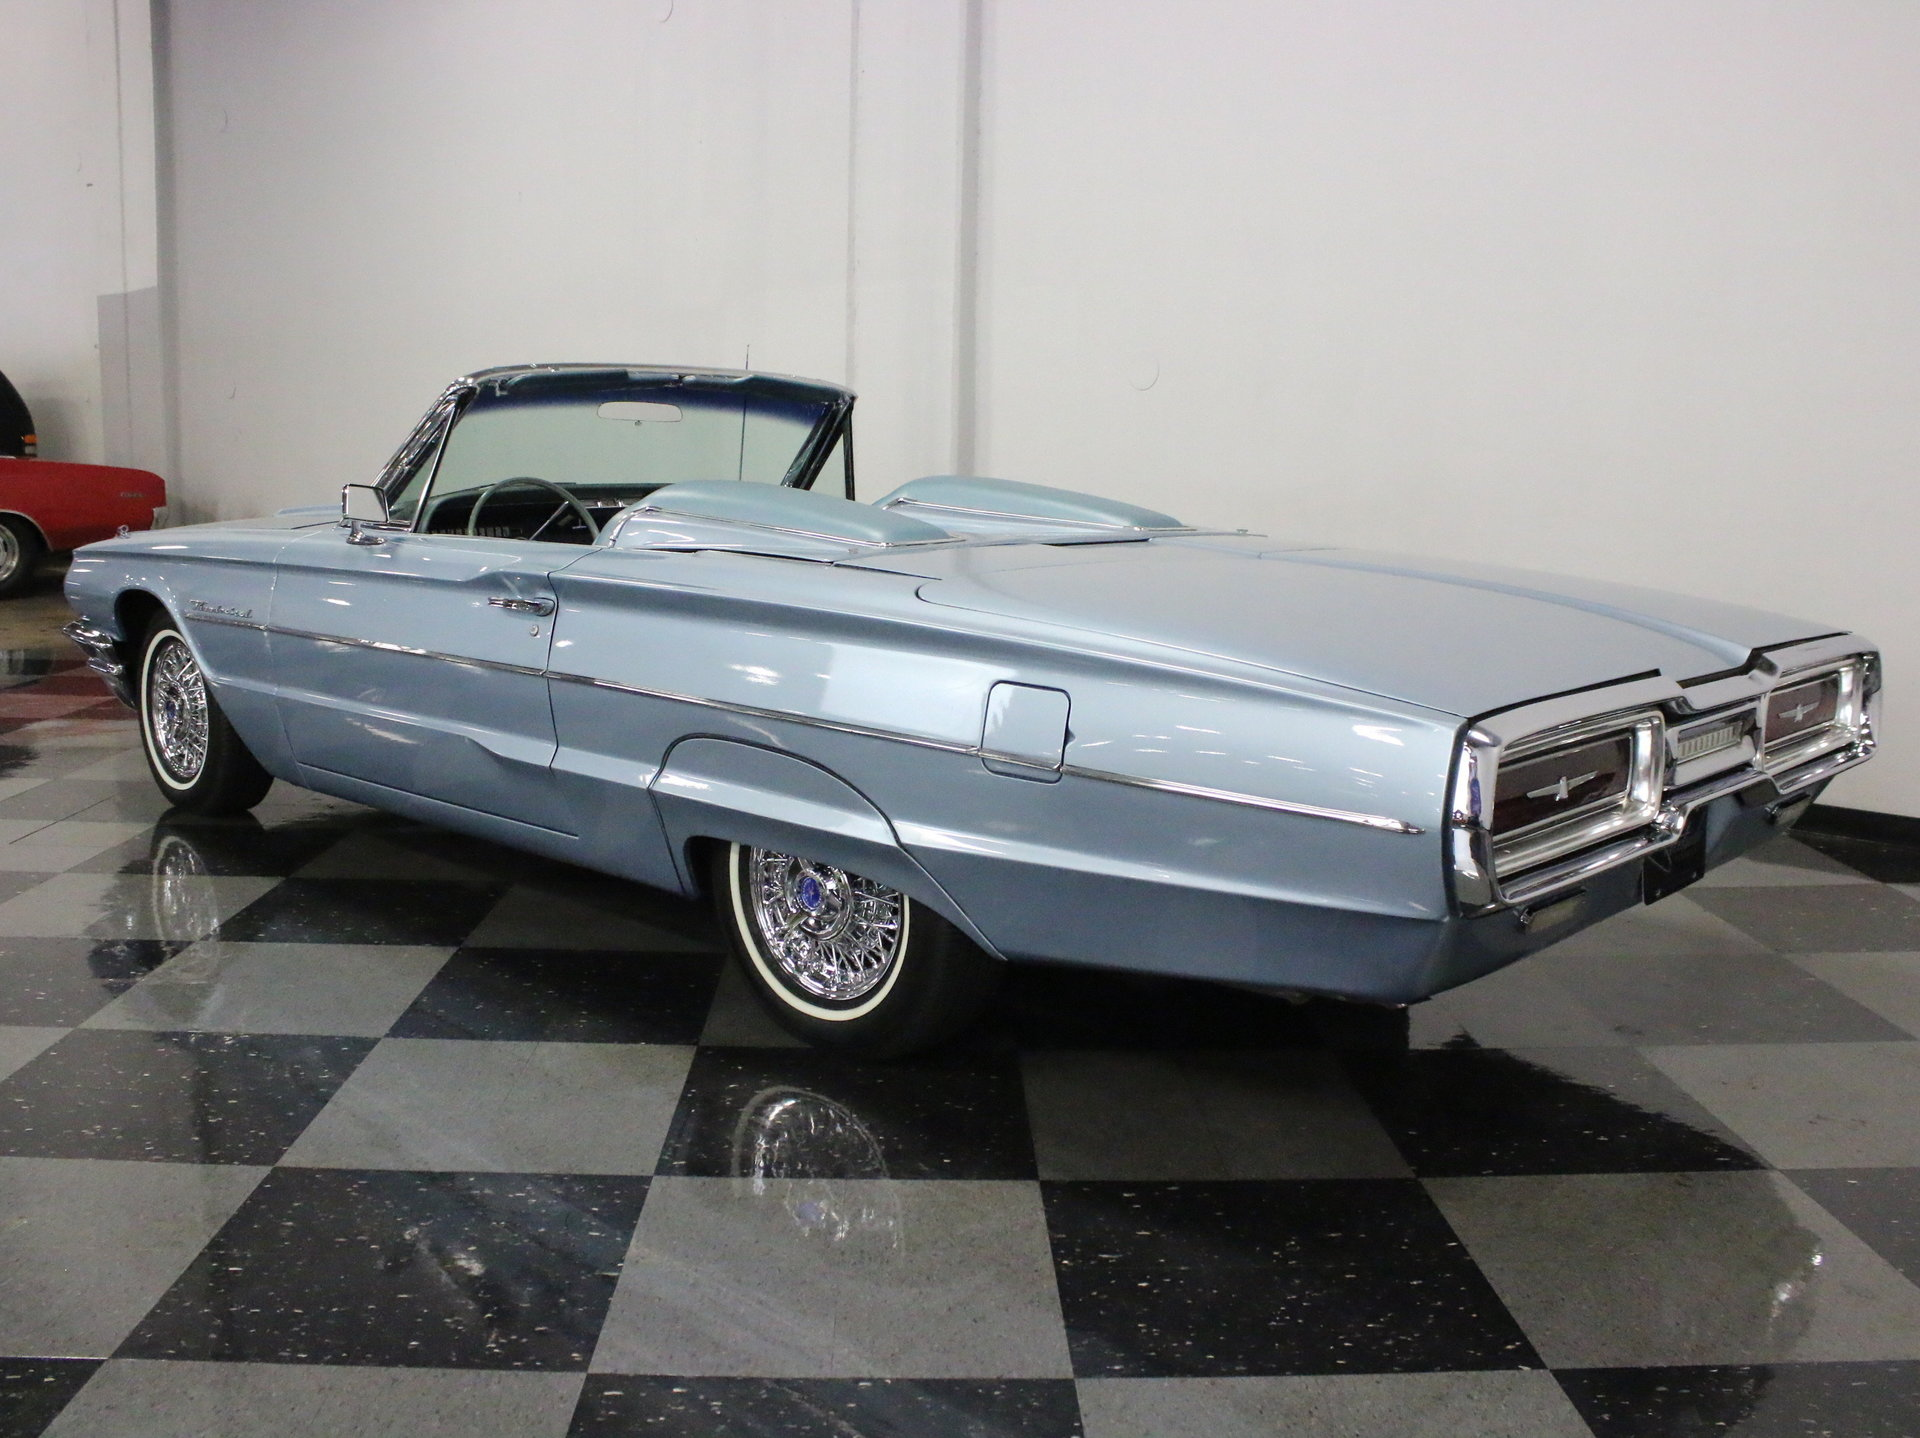 For Sale: 1964 Ford Thunderbird. Spincar view. View 360